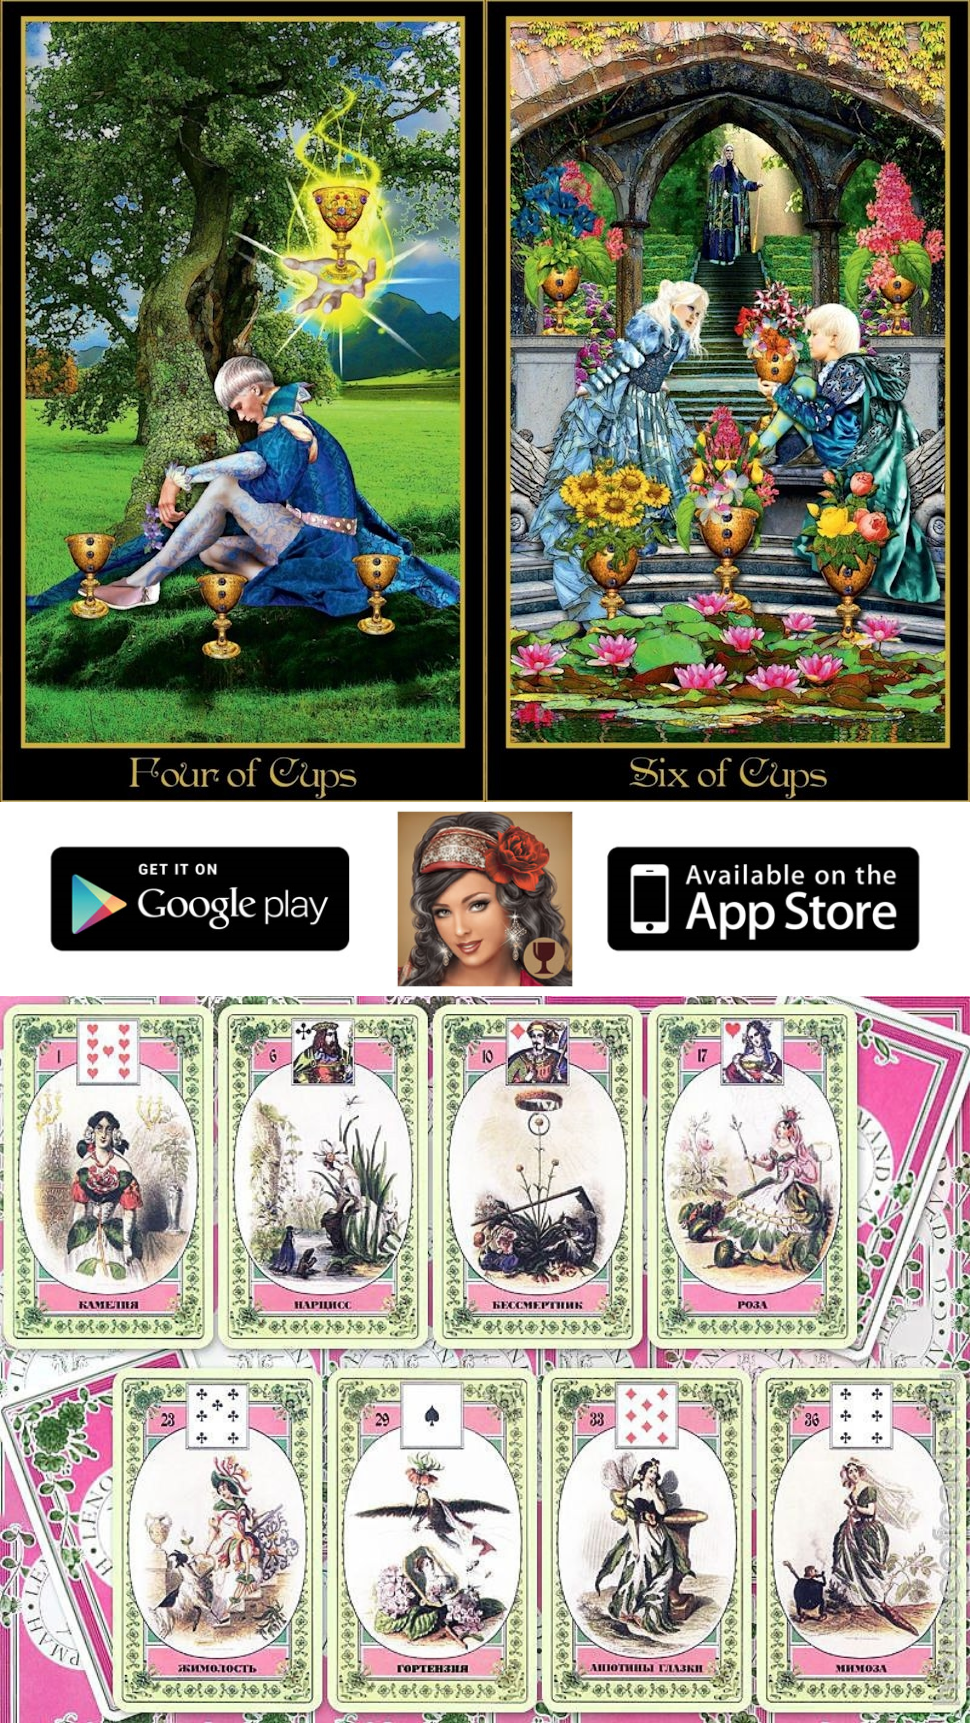 ☞ Get this free mobile app on your phone or tablet and relish